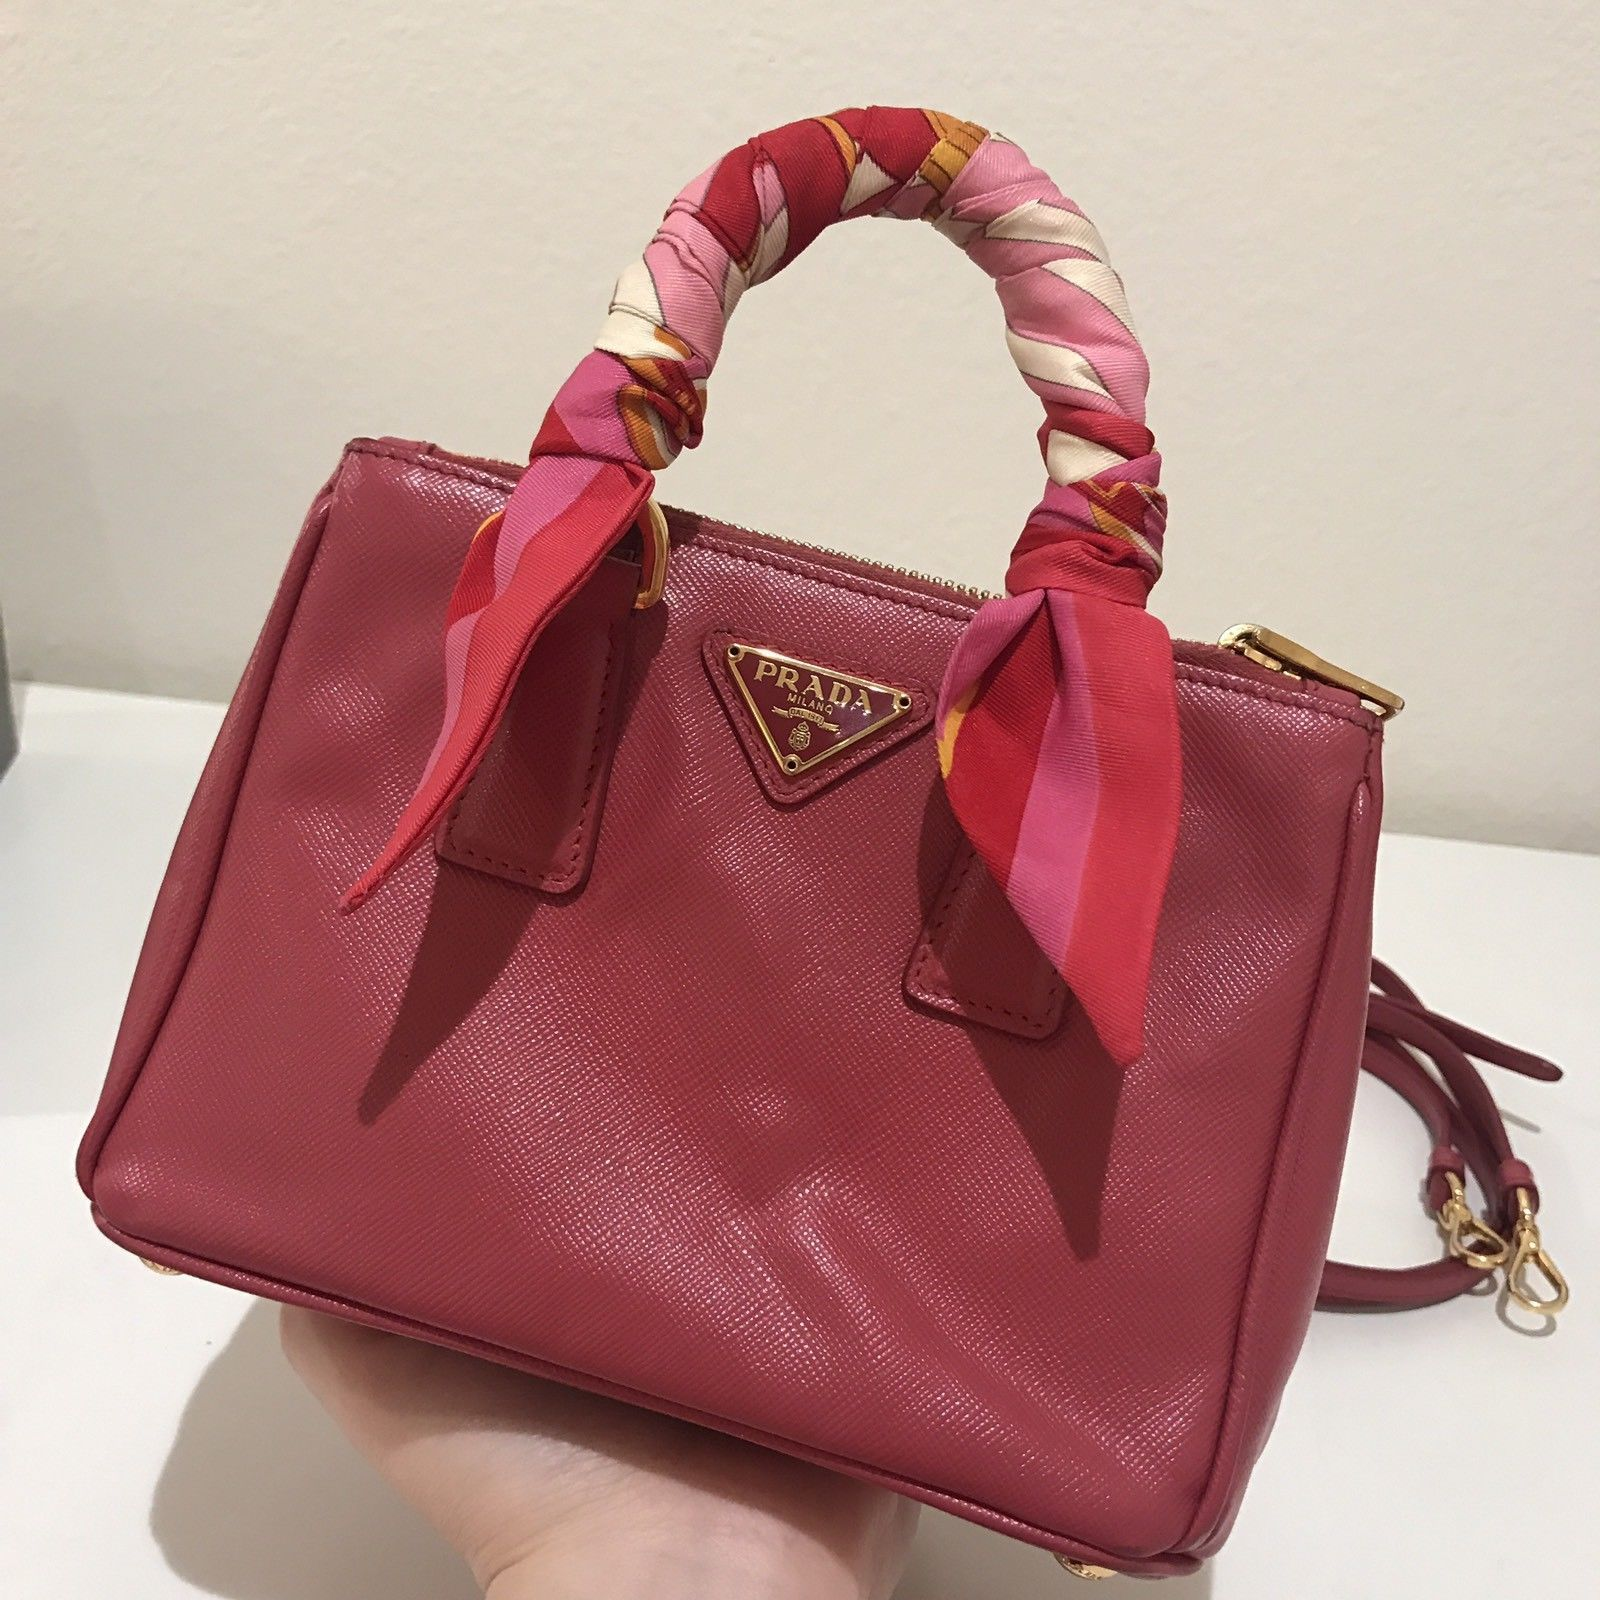 8229c952f8 PRADA Saffiano Handbag Mini Galleria Authenticity BN2842  549.0 ...